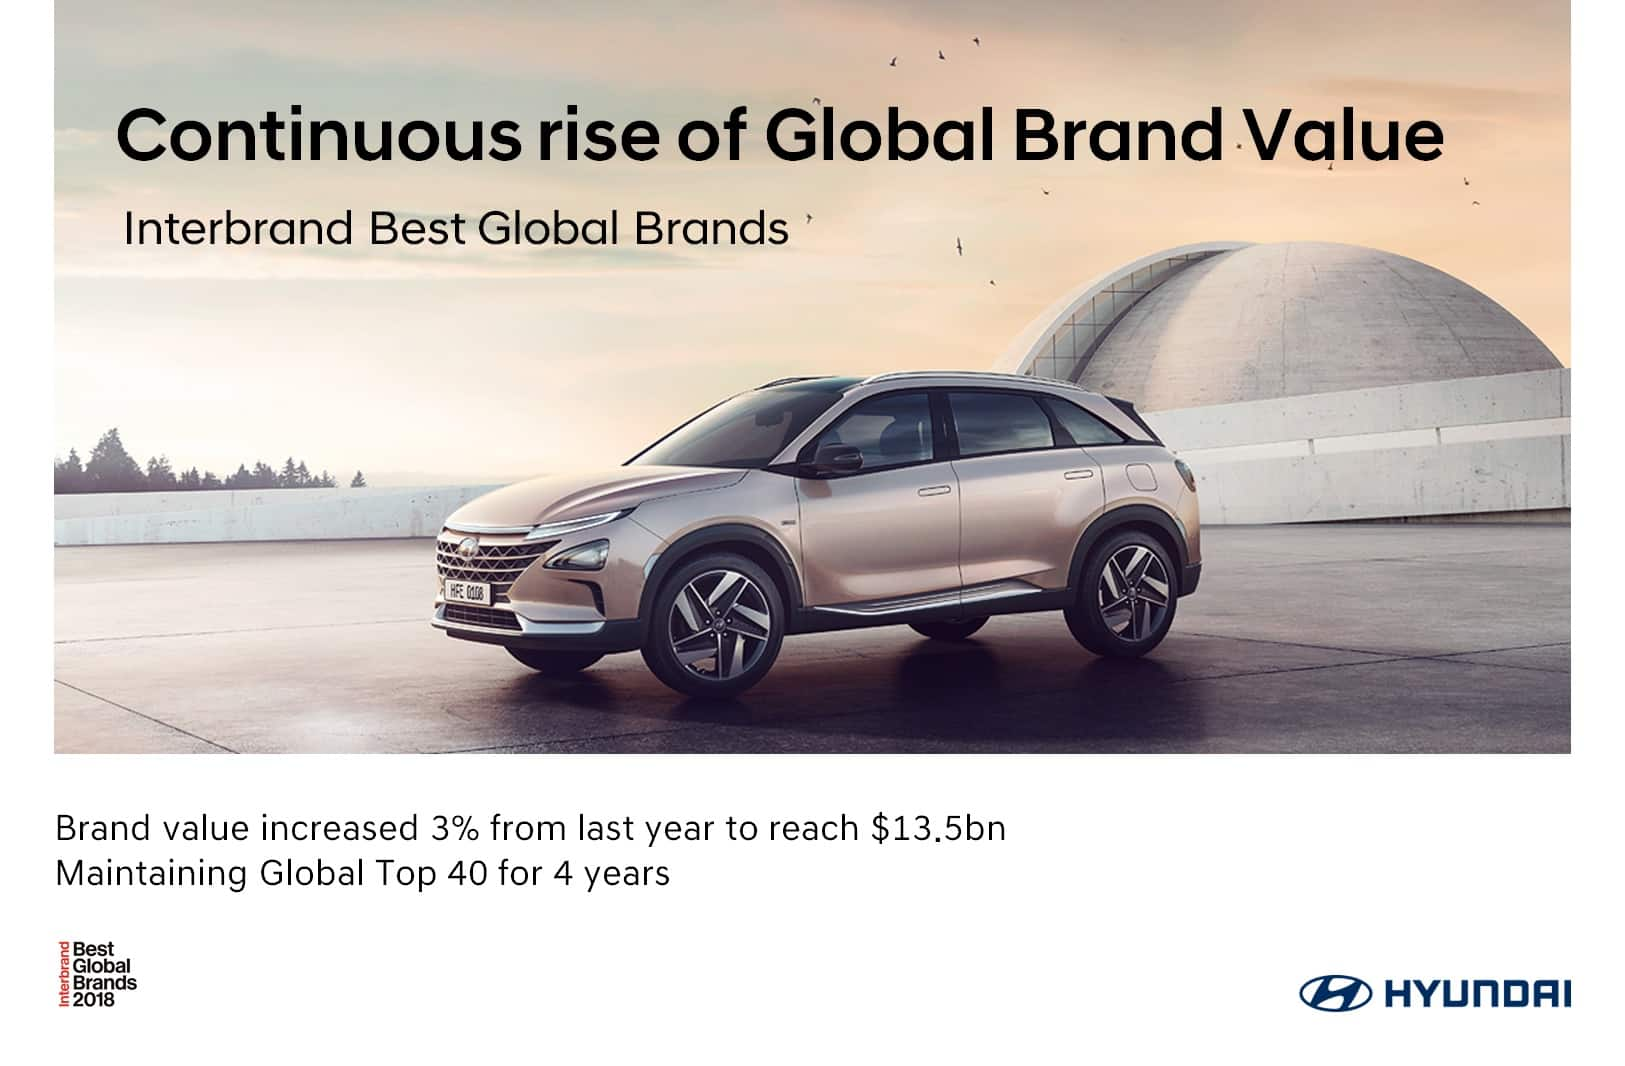 Hyundai Motor Achieves Top 40 Best Global Brands Position for Fourth Consecutive Year